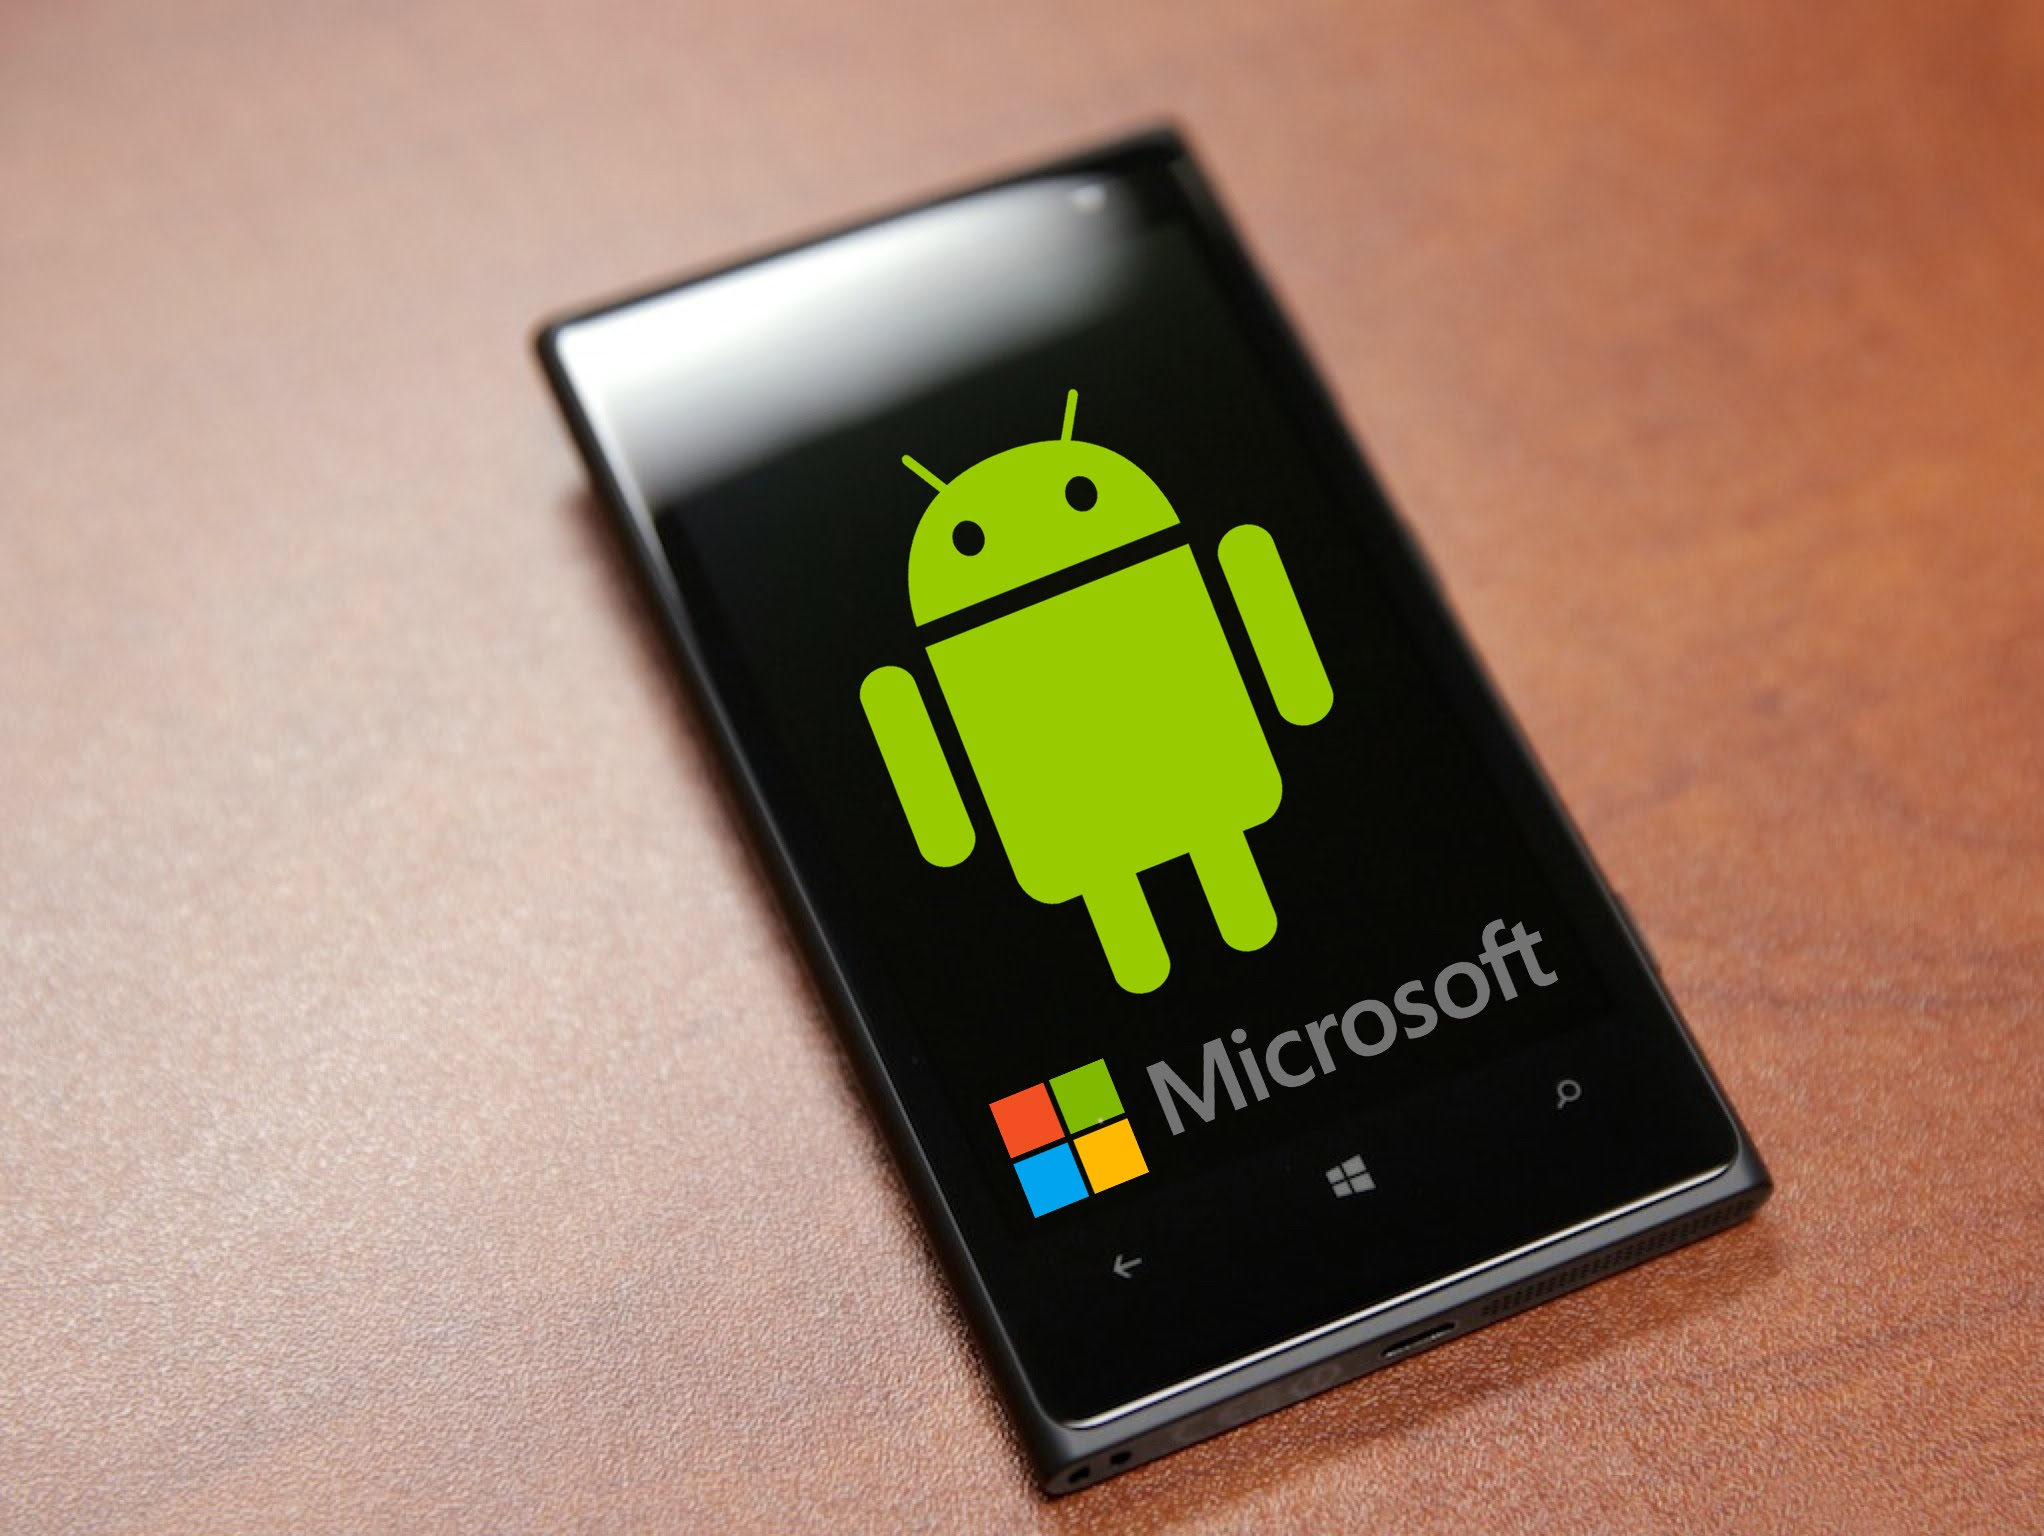 Restablecer celulares con Windows Phone